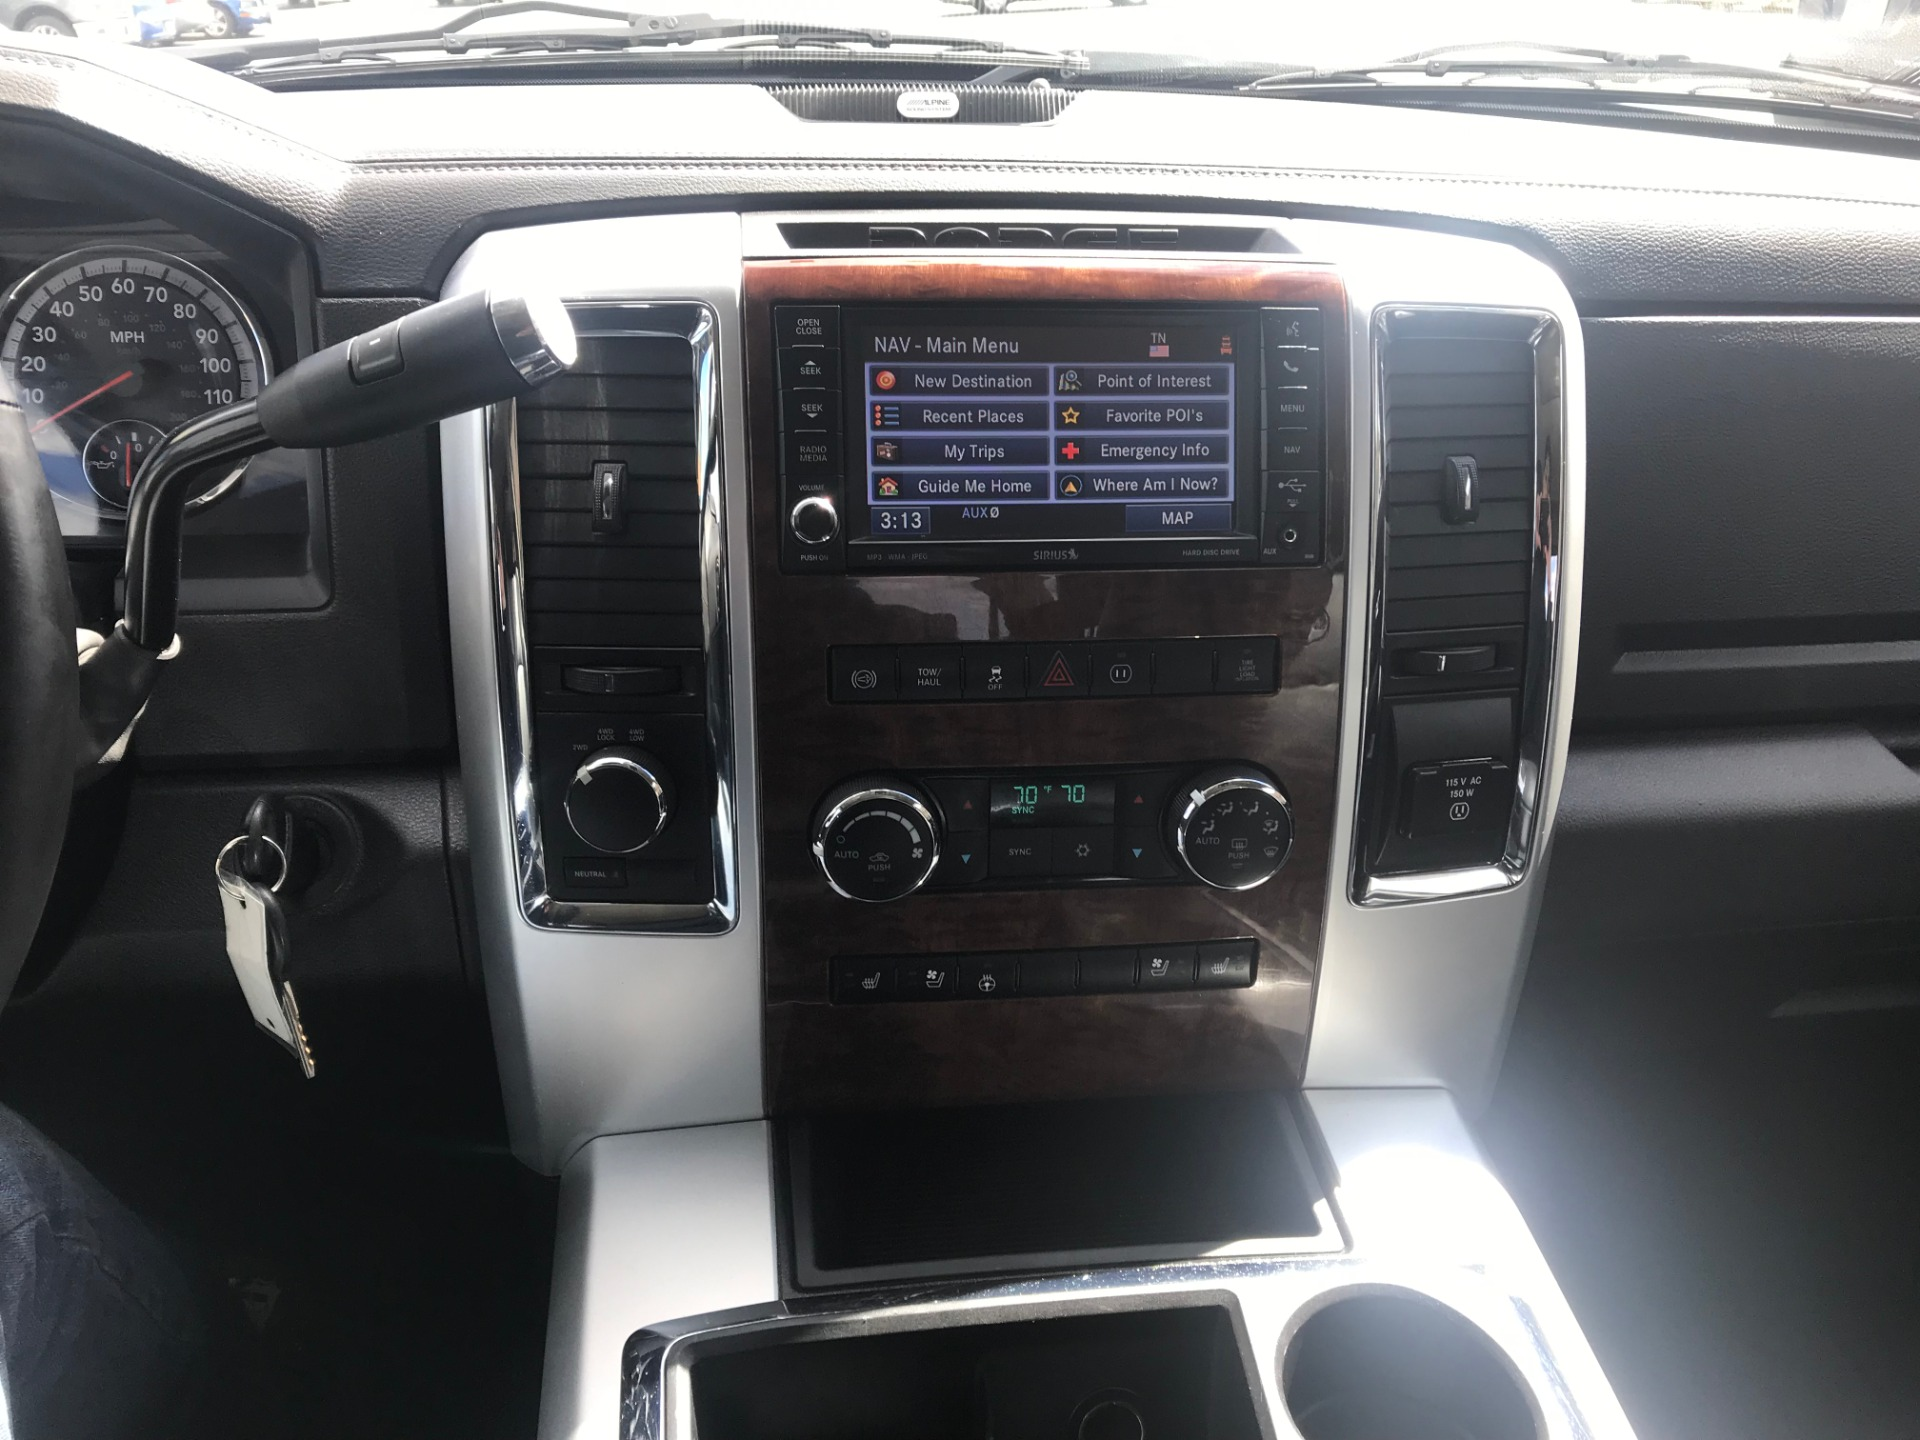 Used-2012-Dodge-Ram-Pickup-2500-DIESEL-Laramie